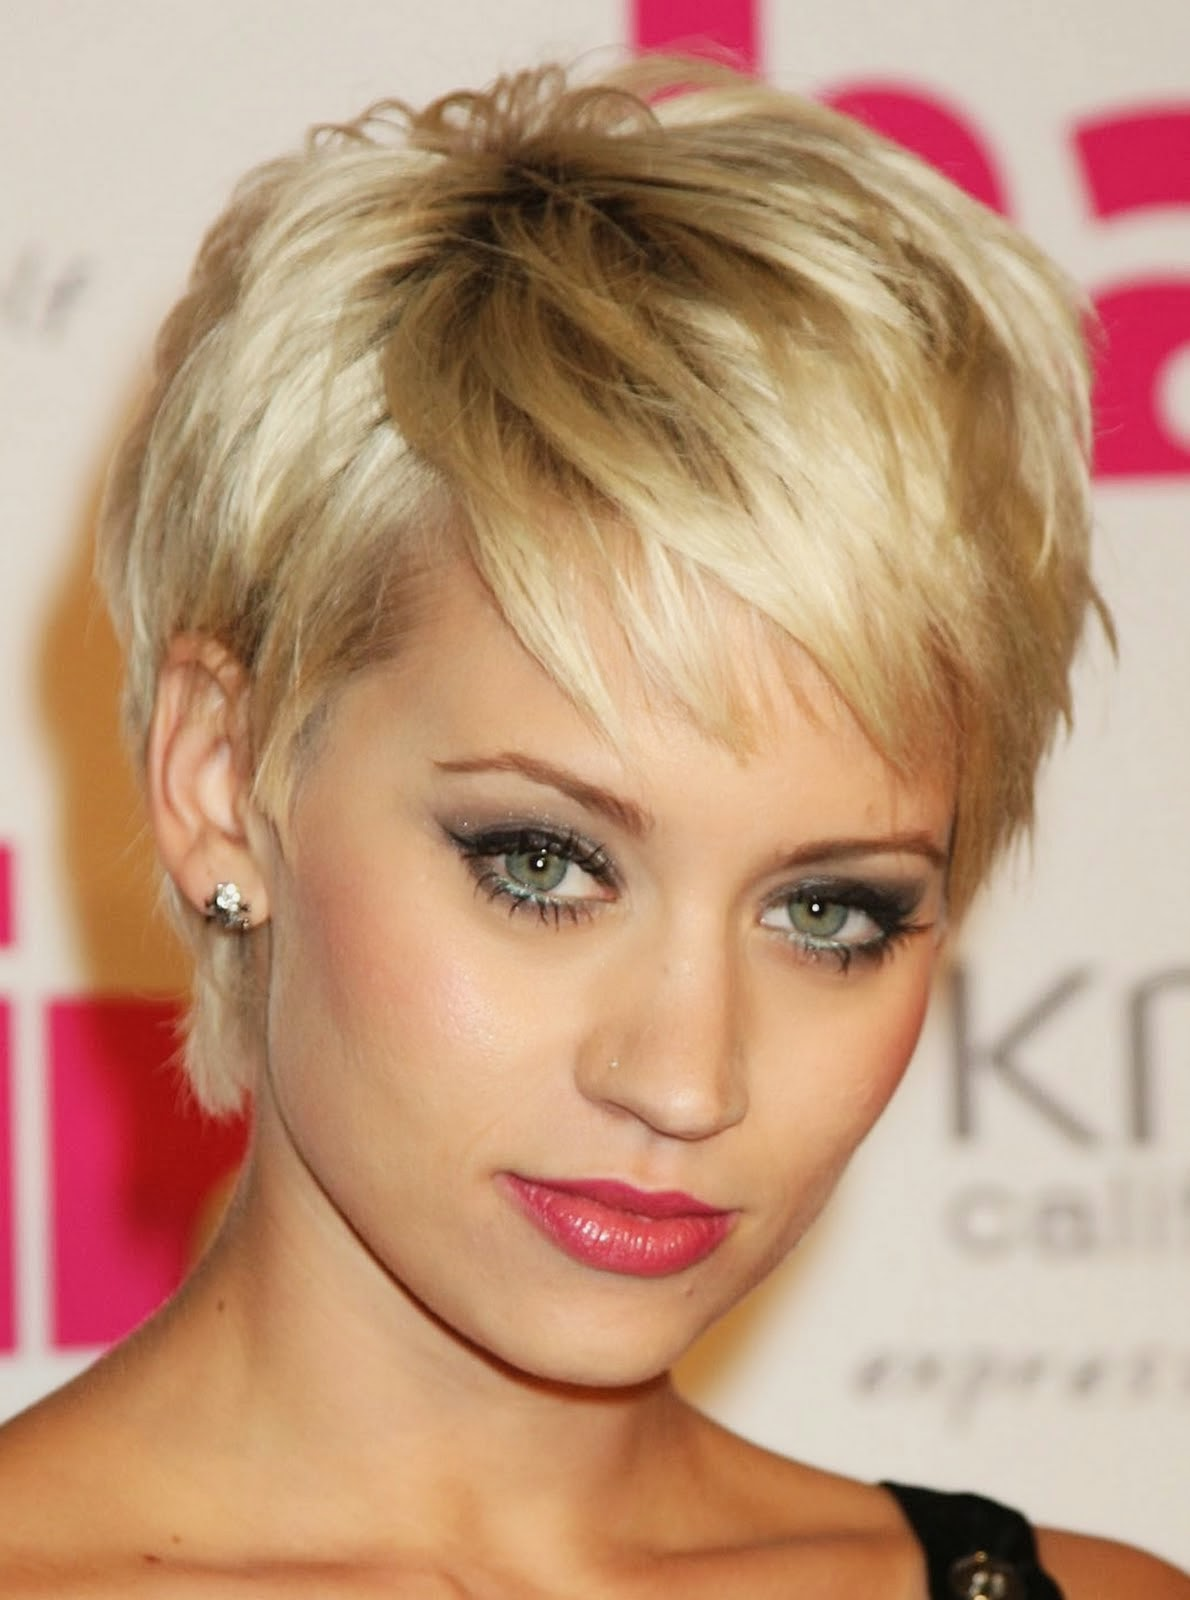 Hairstyle For Thin Volume Hair : Short hairstyles for fine hair pictures